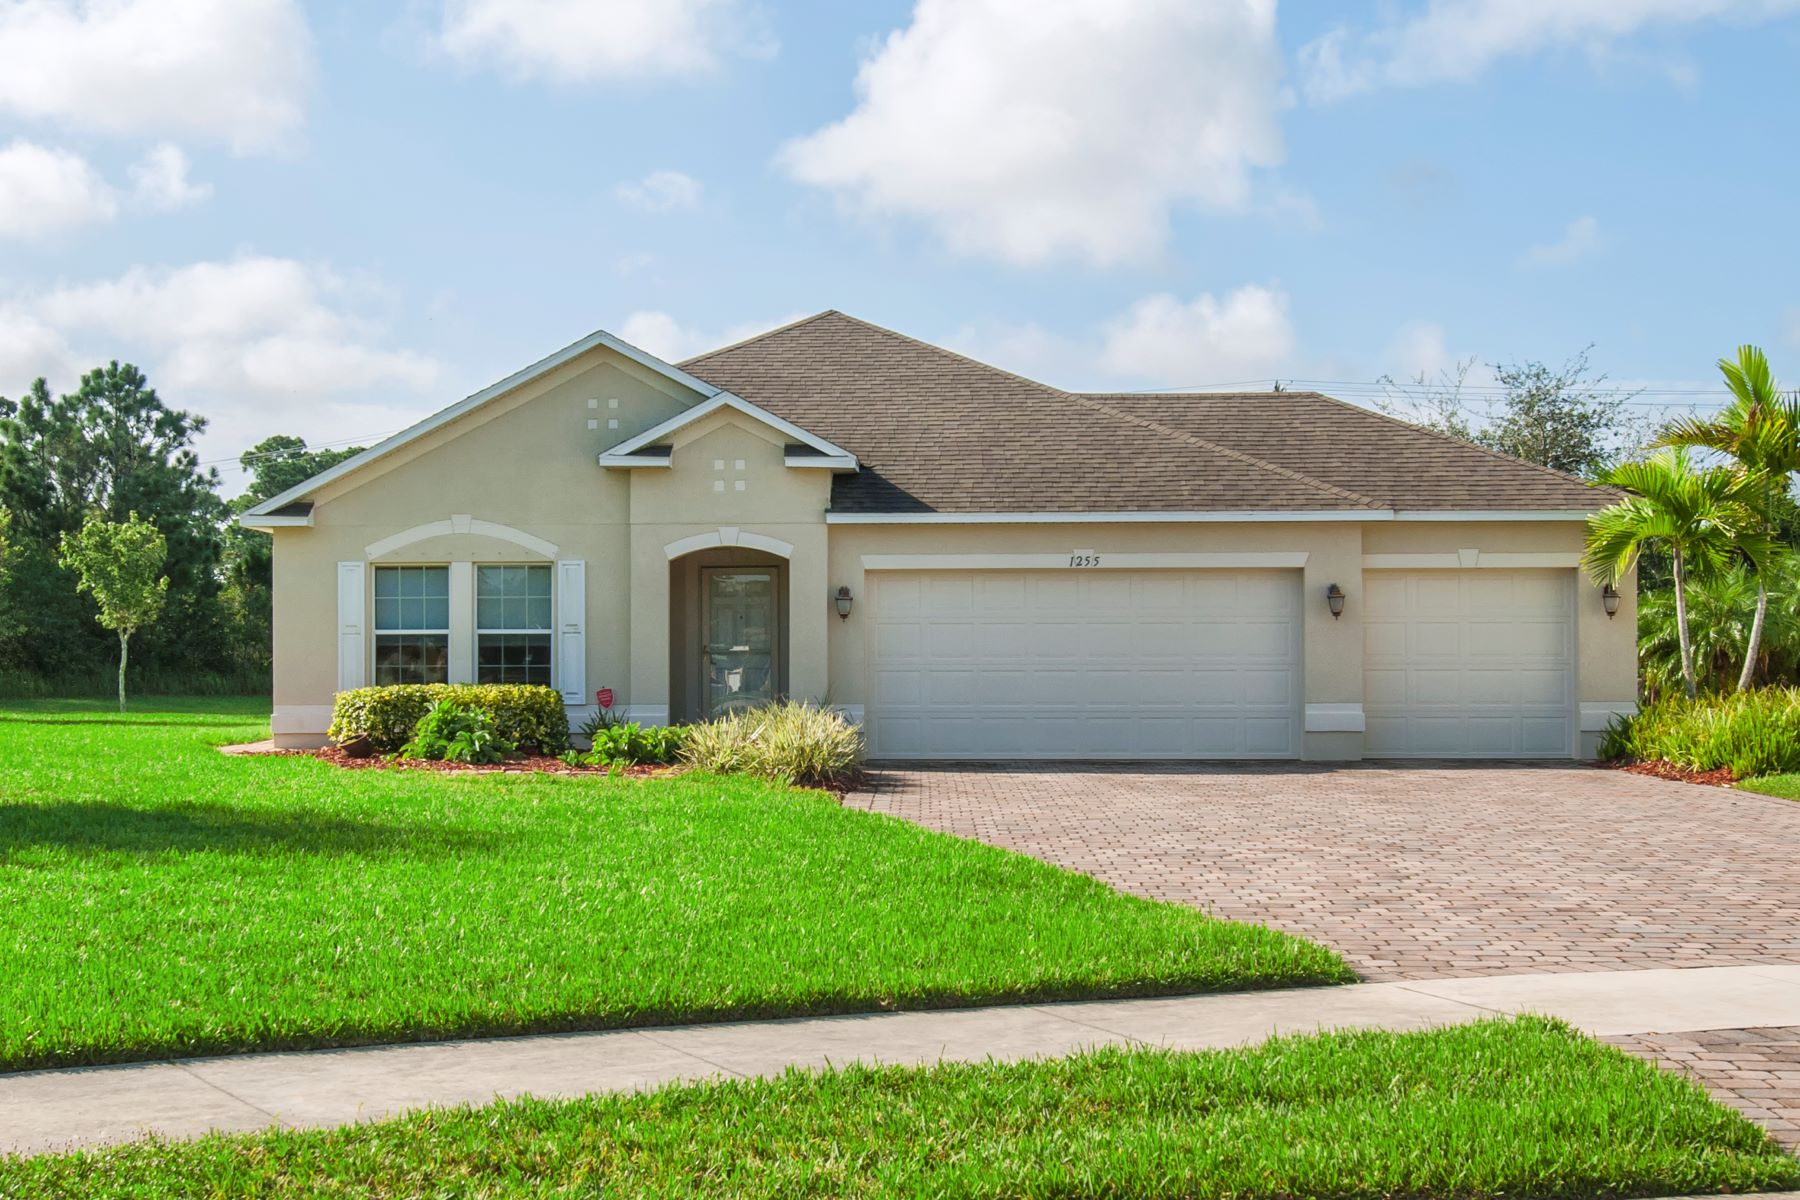 Single Family Homes のために 売買 アット Lakefront Home With Lots of Room for Entertaining! 1255 Lexington Lane Sw Vero Beach, フロリダ 32962 アメリカ